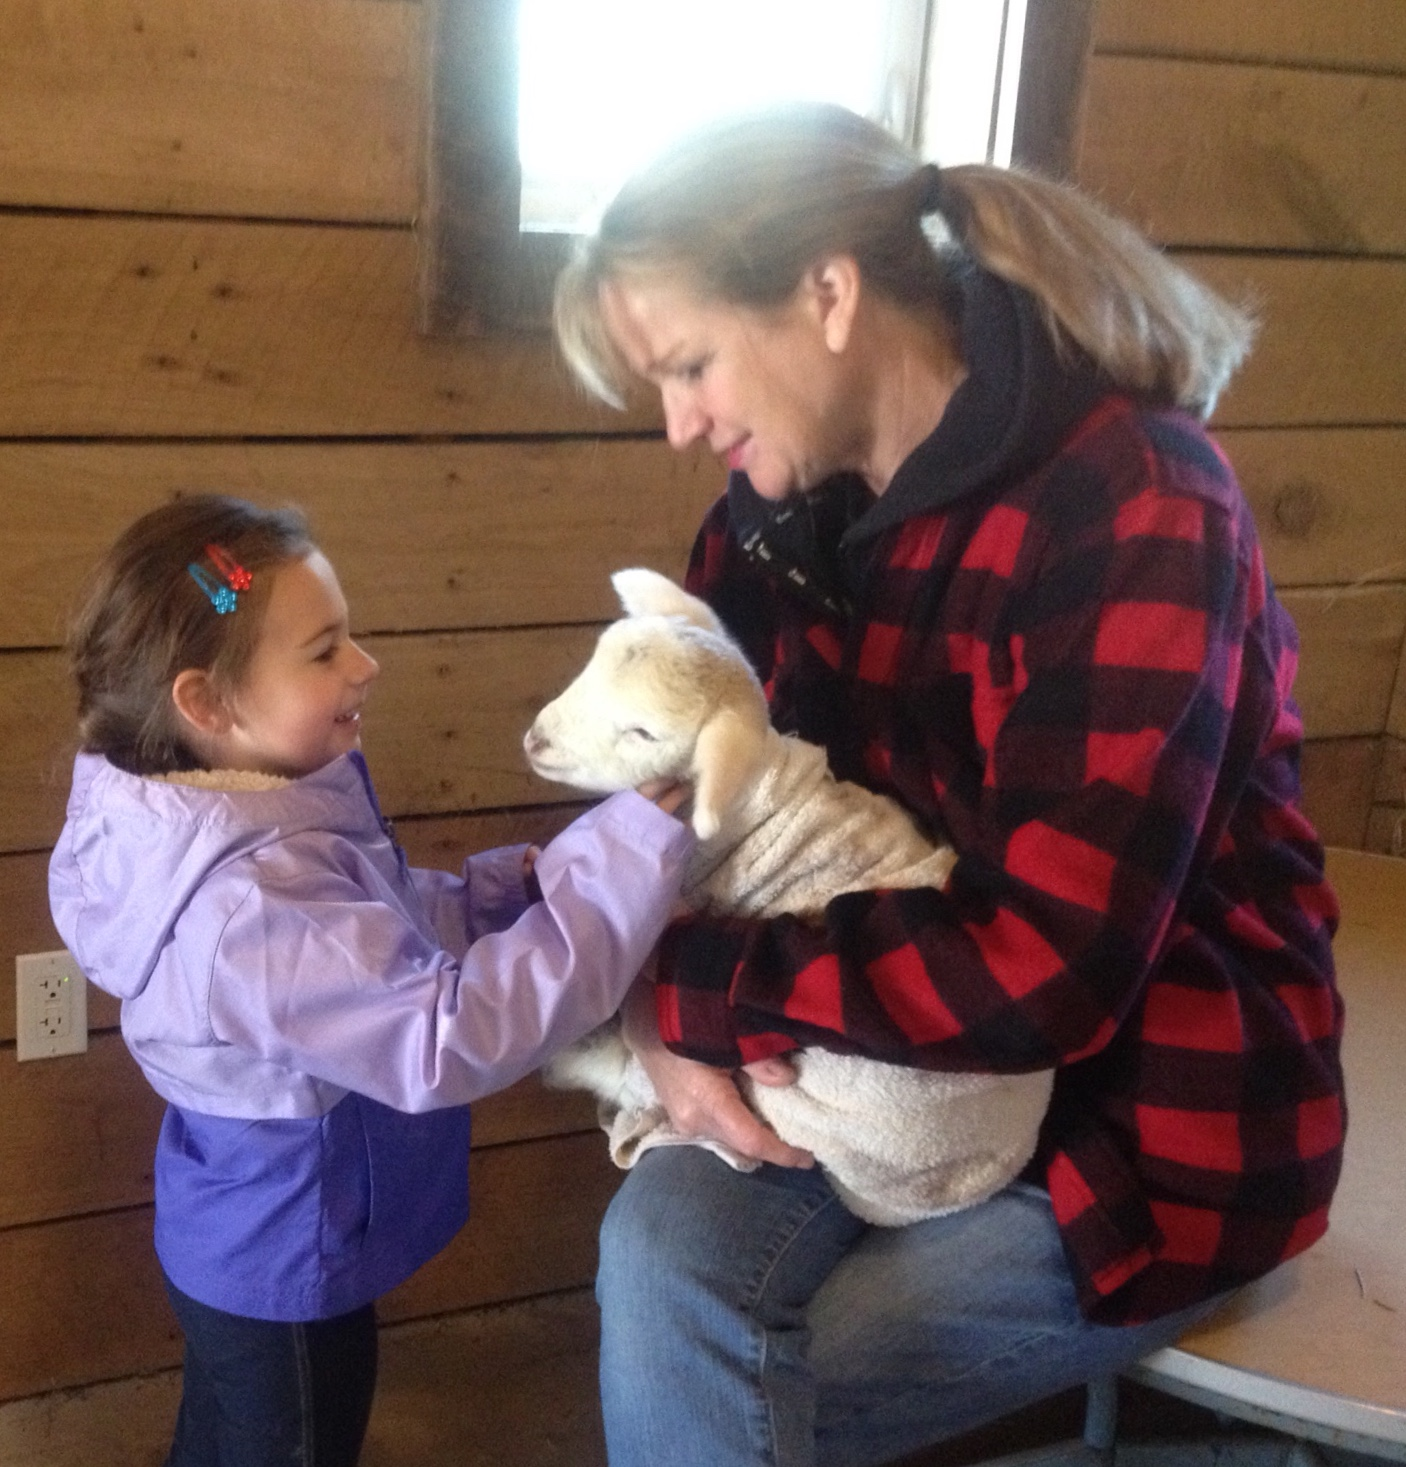 Petting the Lamb